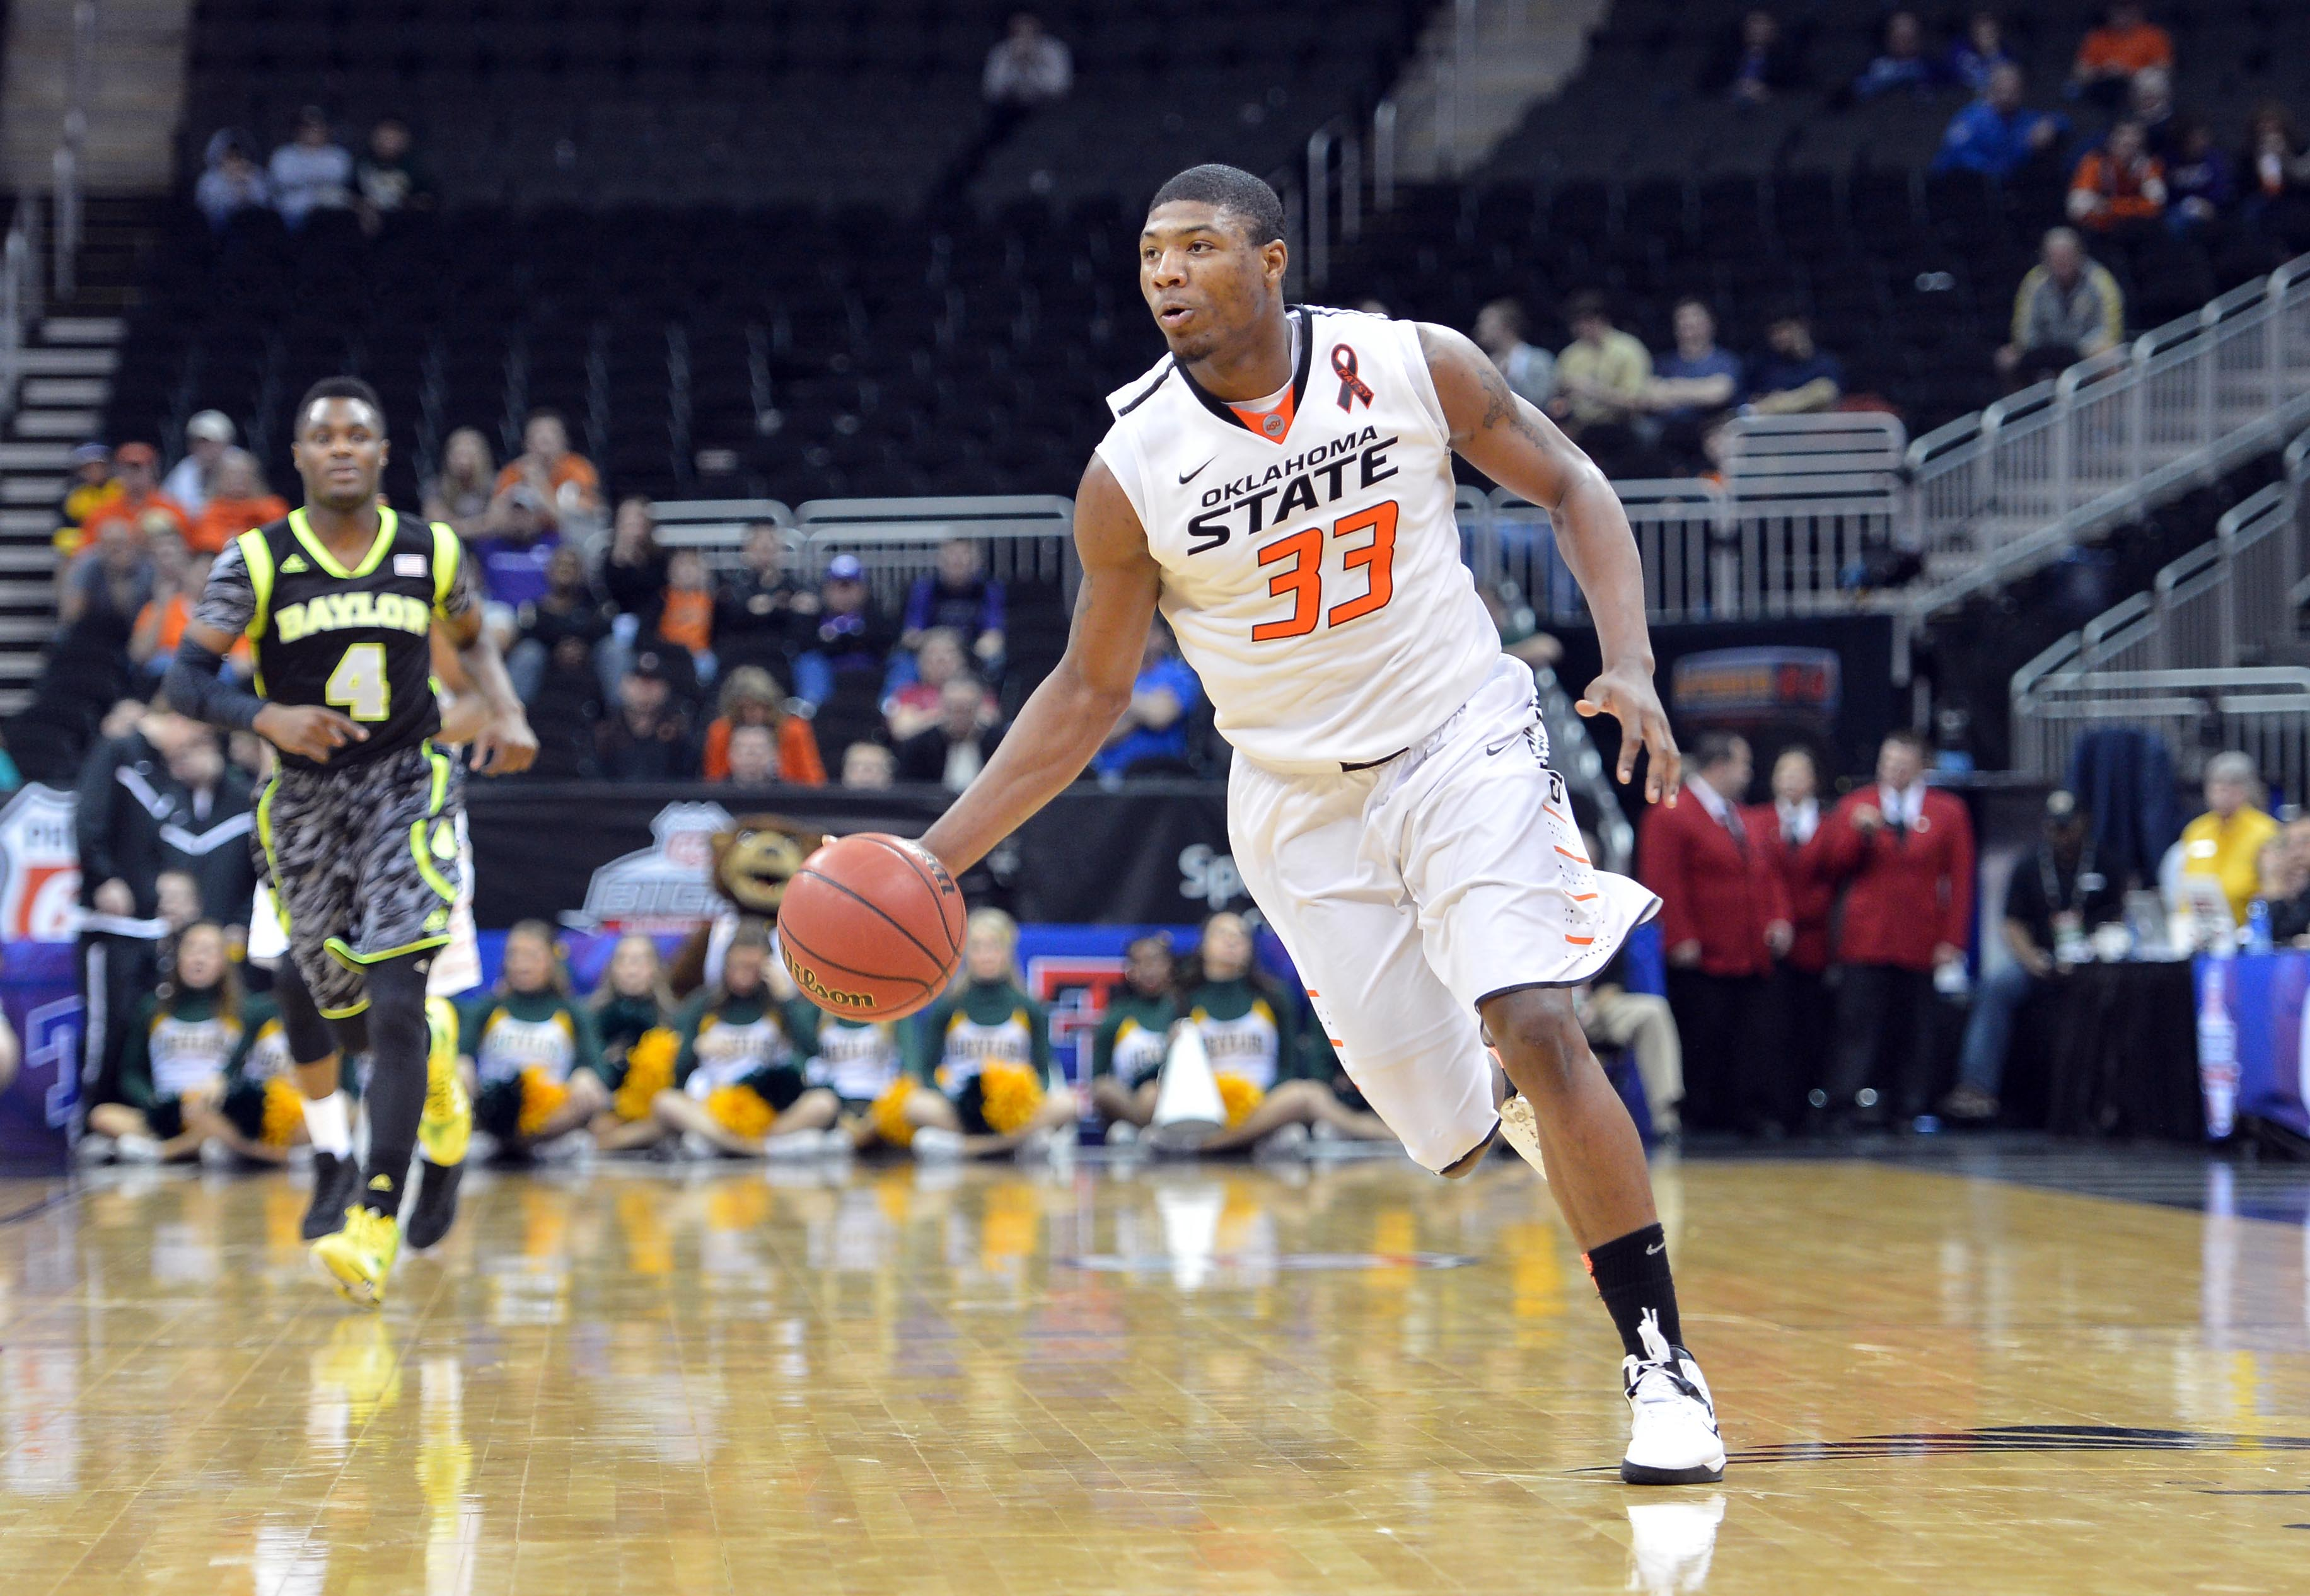 Marcus Smart was projected to be a high pick in the NBA draft. (USA Today Sports)